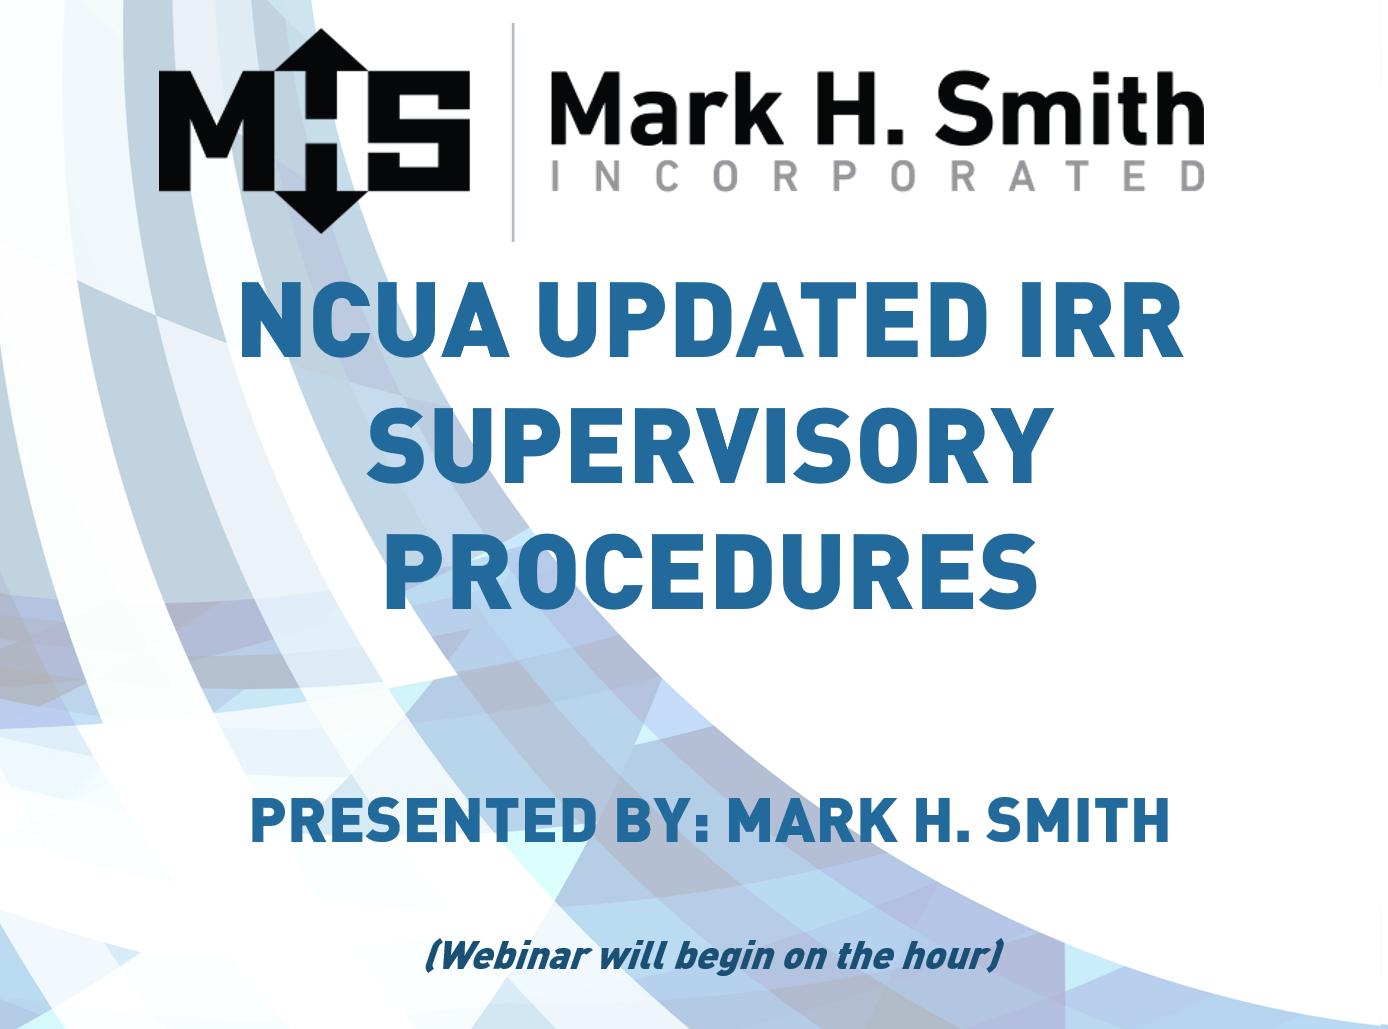 NCUA Updated IRR Supervisory Procedures